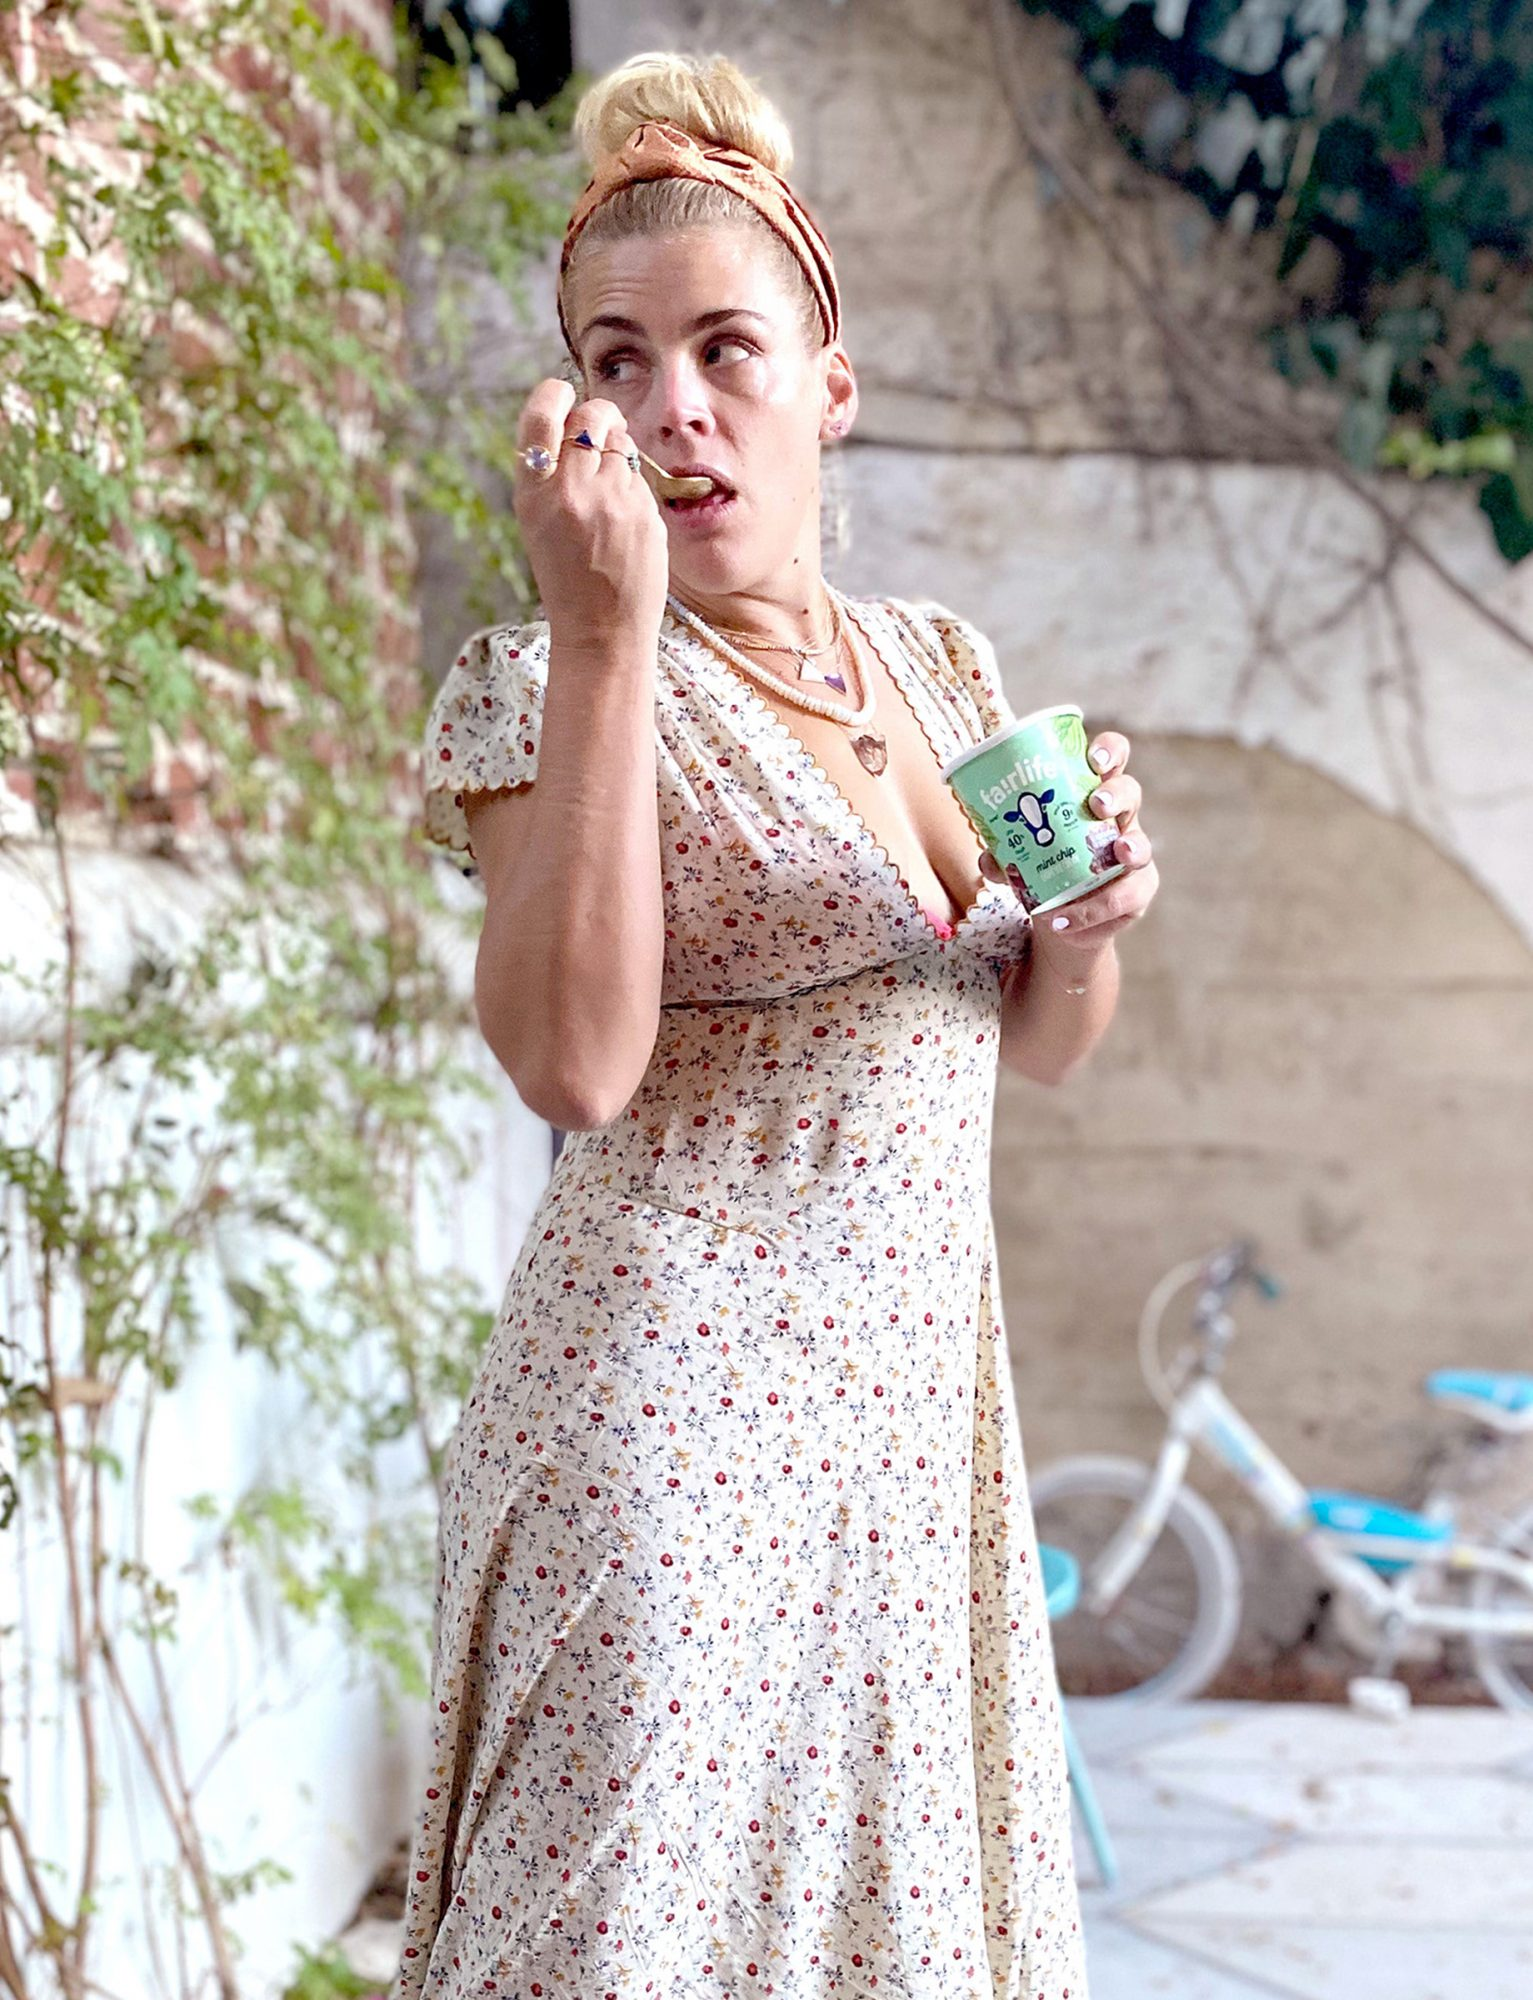 Busy Philipps satisfies her sweet tooth at home in LA with some delicious fairlife Light Ice Cream.